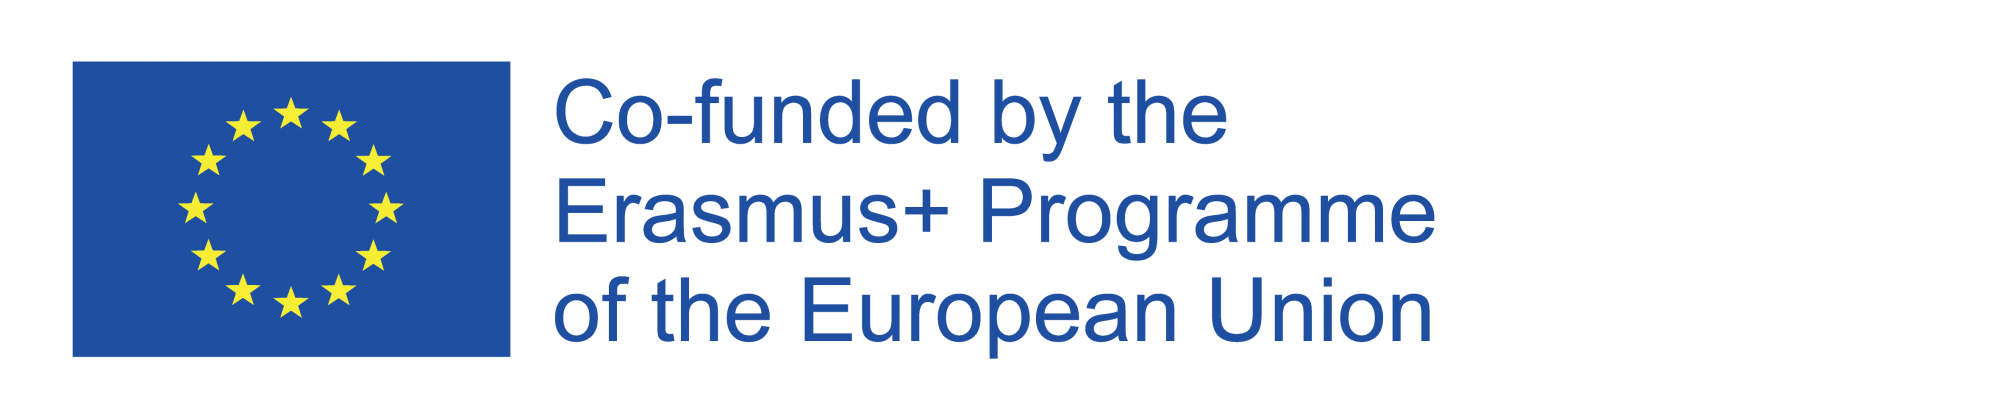 co-funded by Erasmus